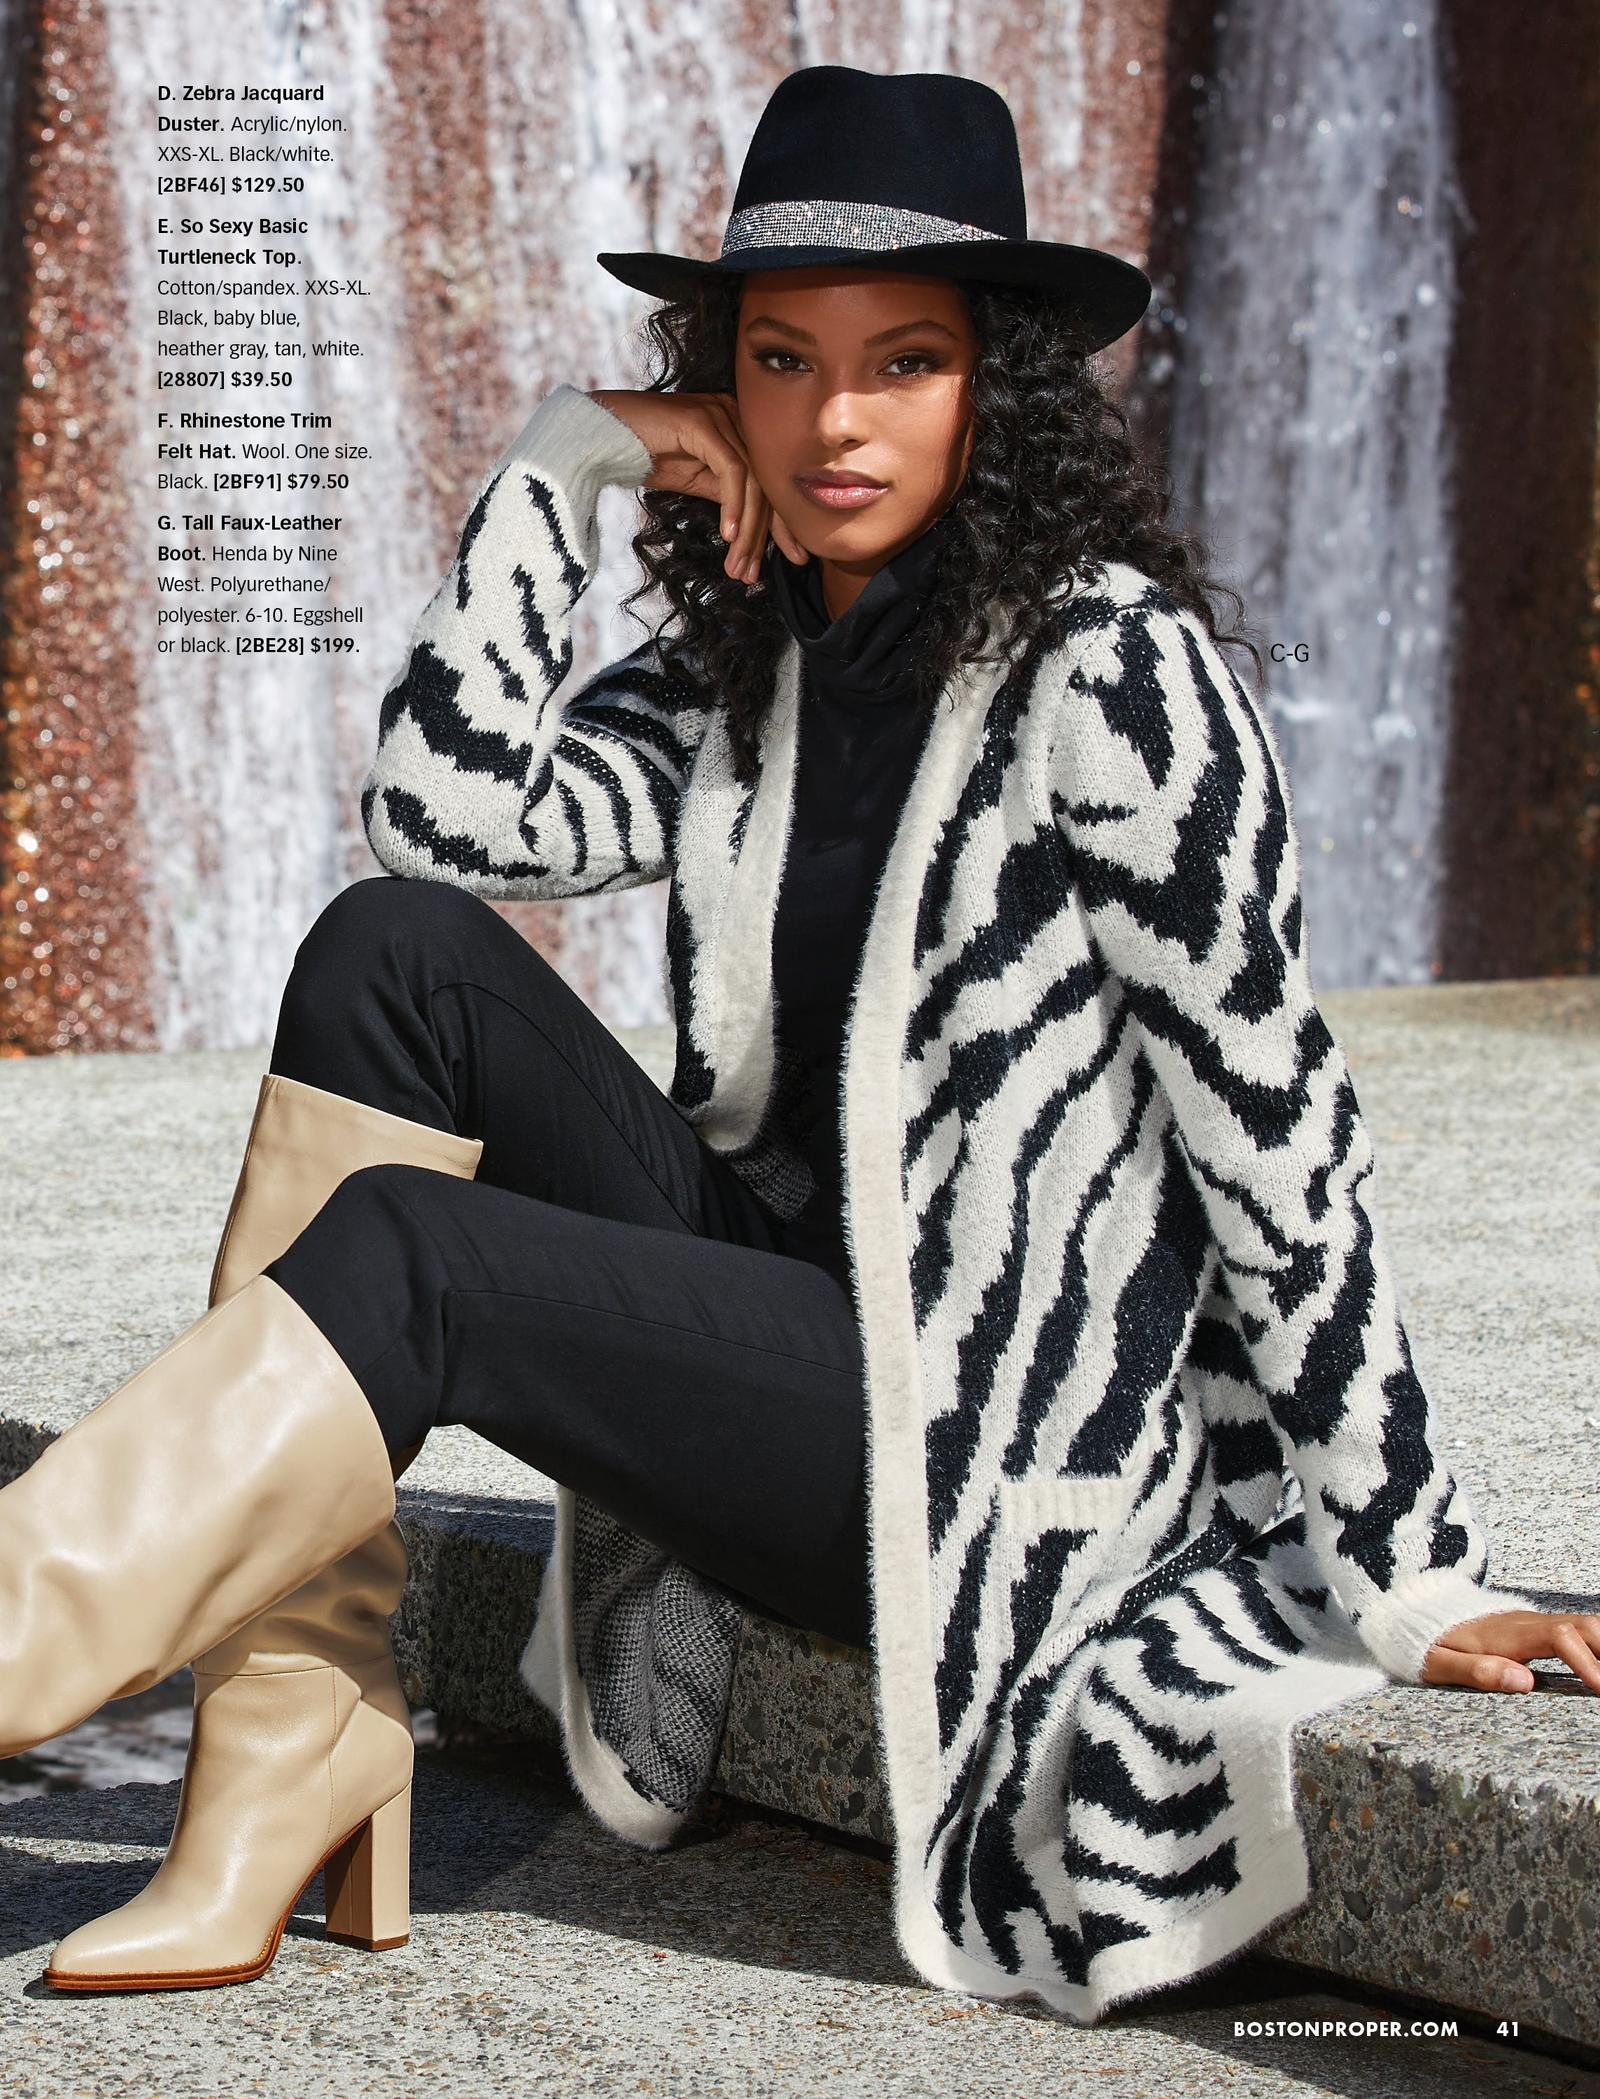 model wearing a black and white zebra duster, black turtleneck top, black jeans, black rhinestone trim felt hat, and tan faux-leather under-the-knee boots.